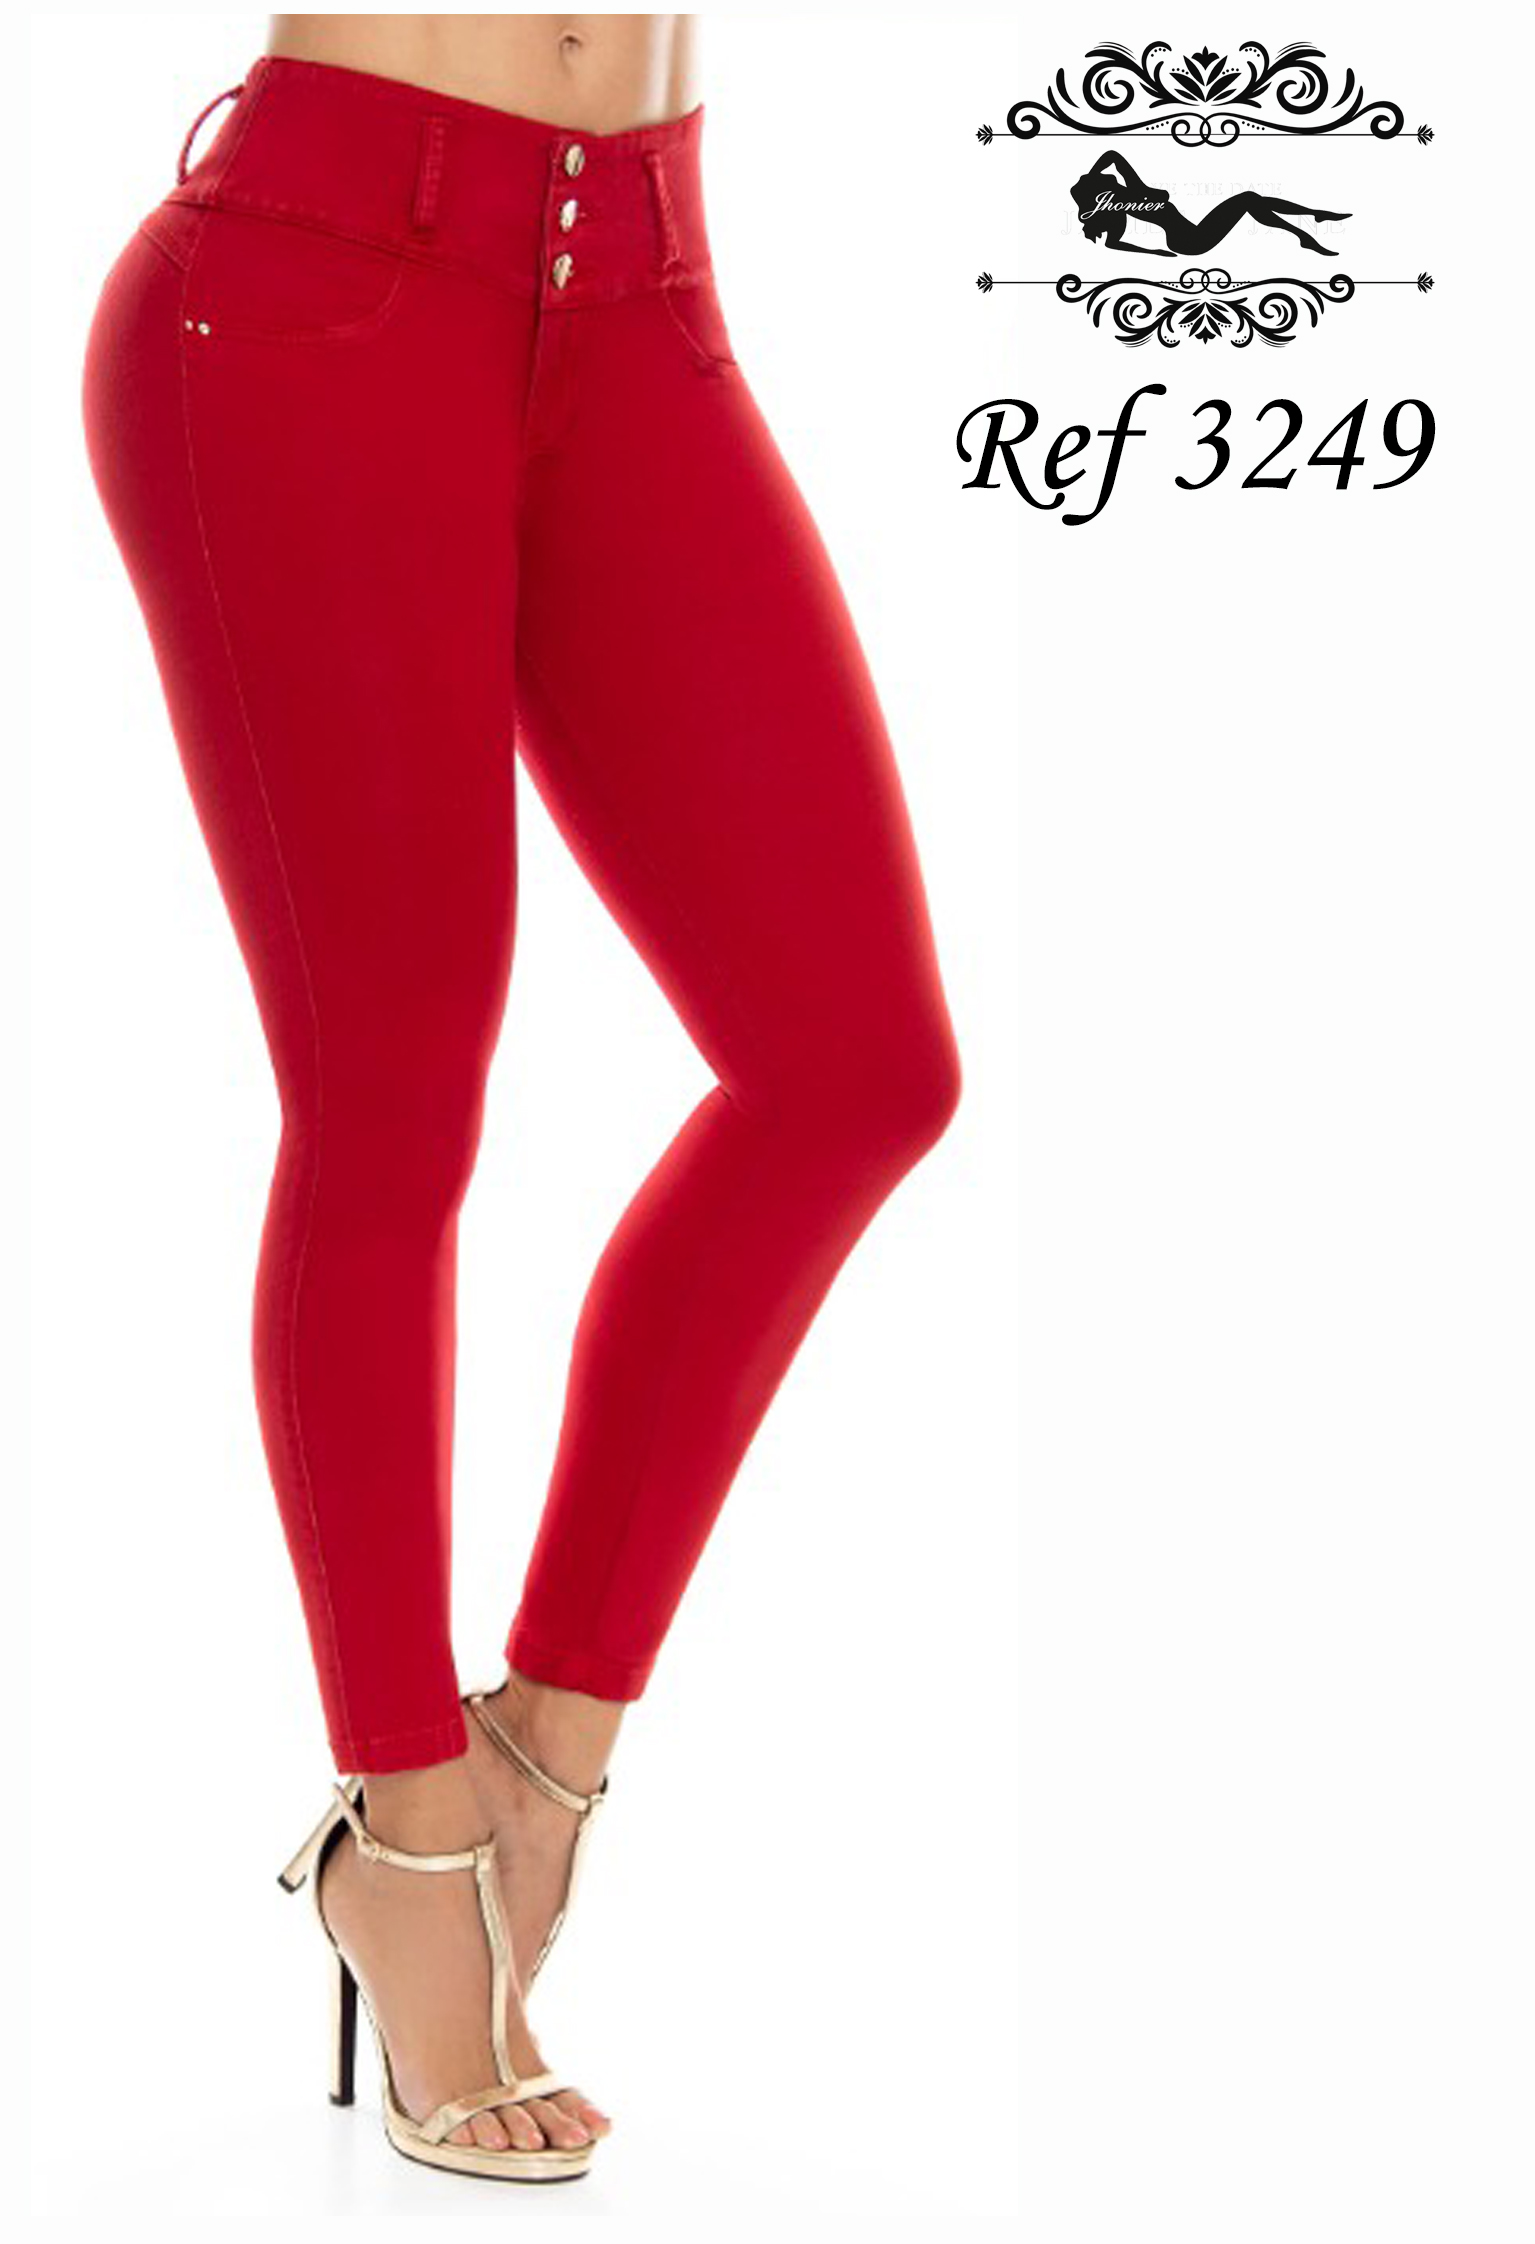 Jeans Colombiano 3249